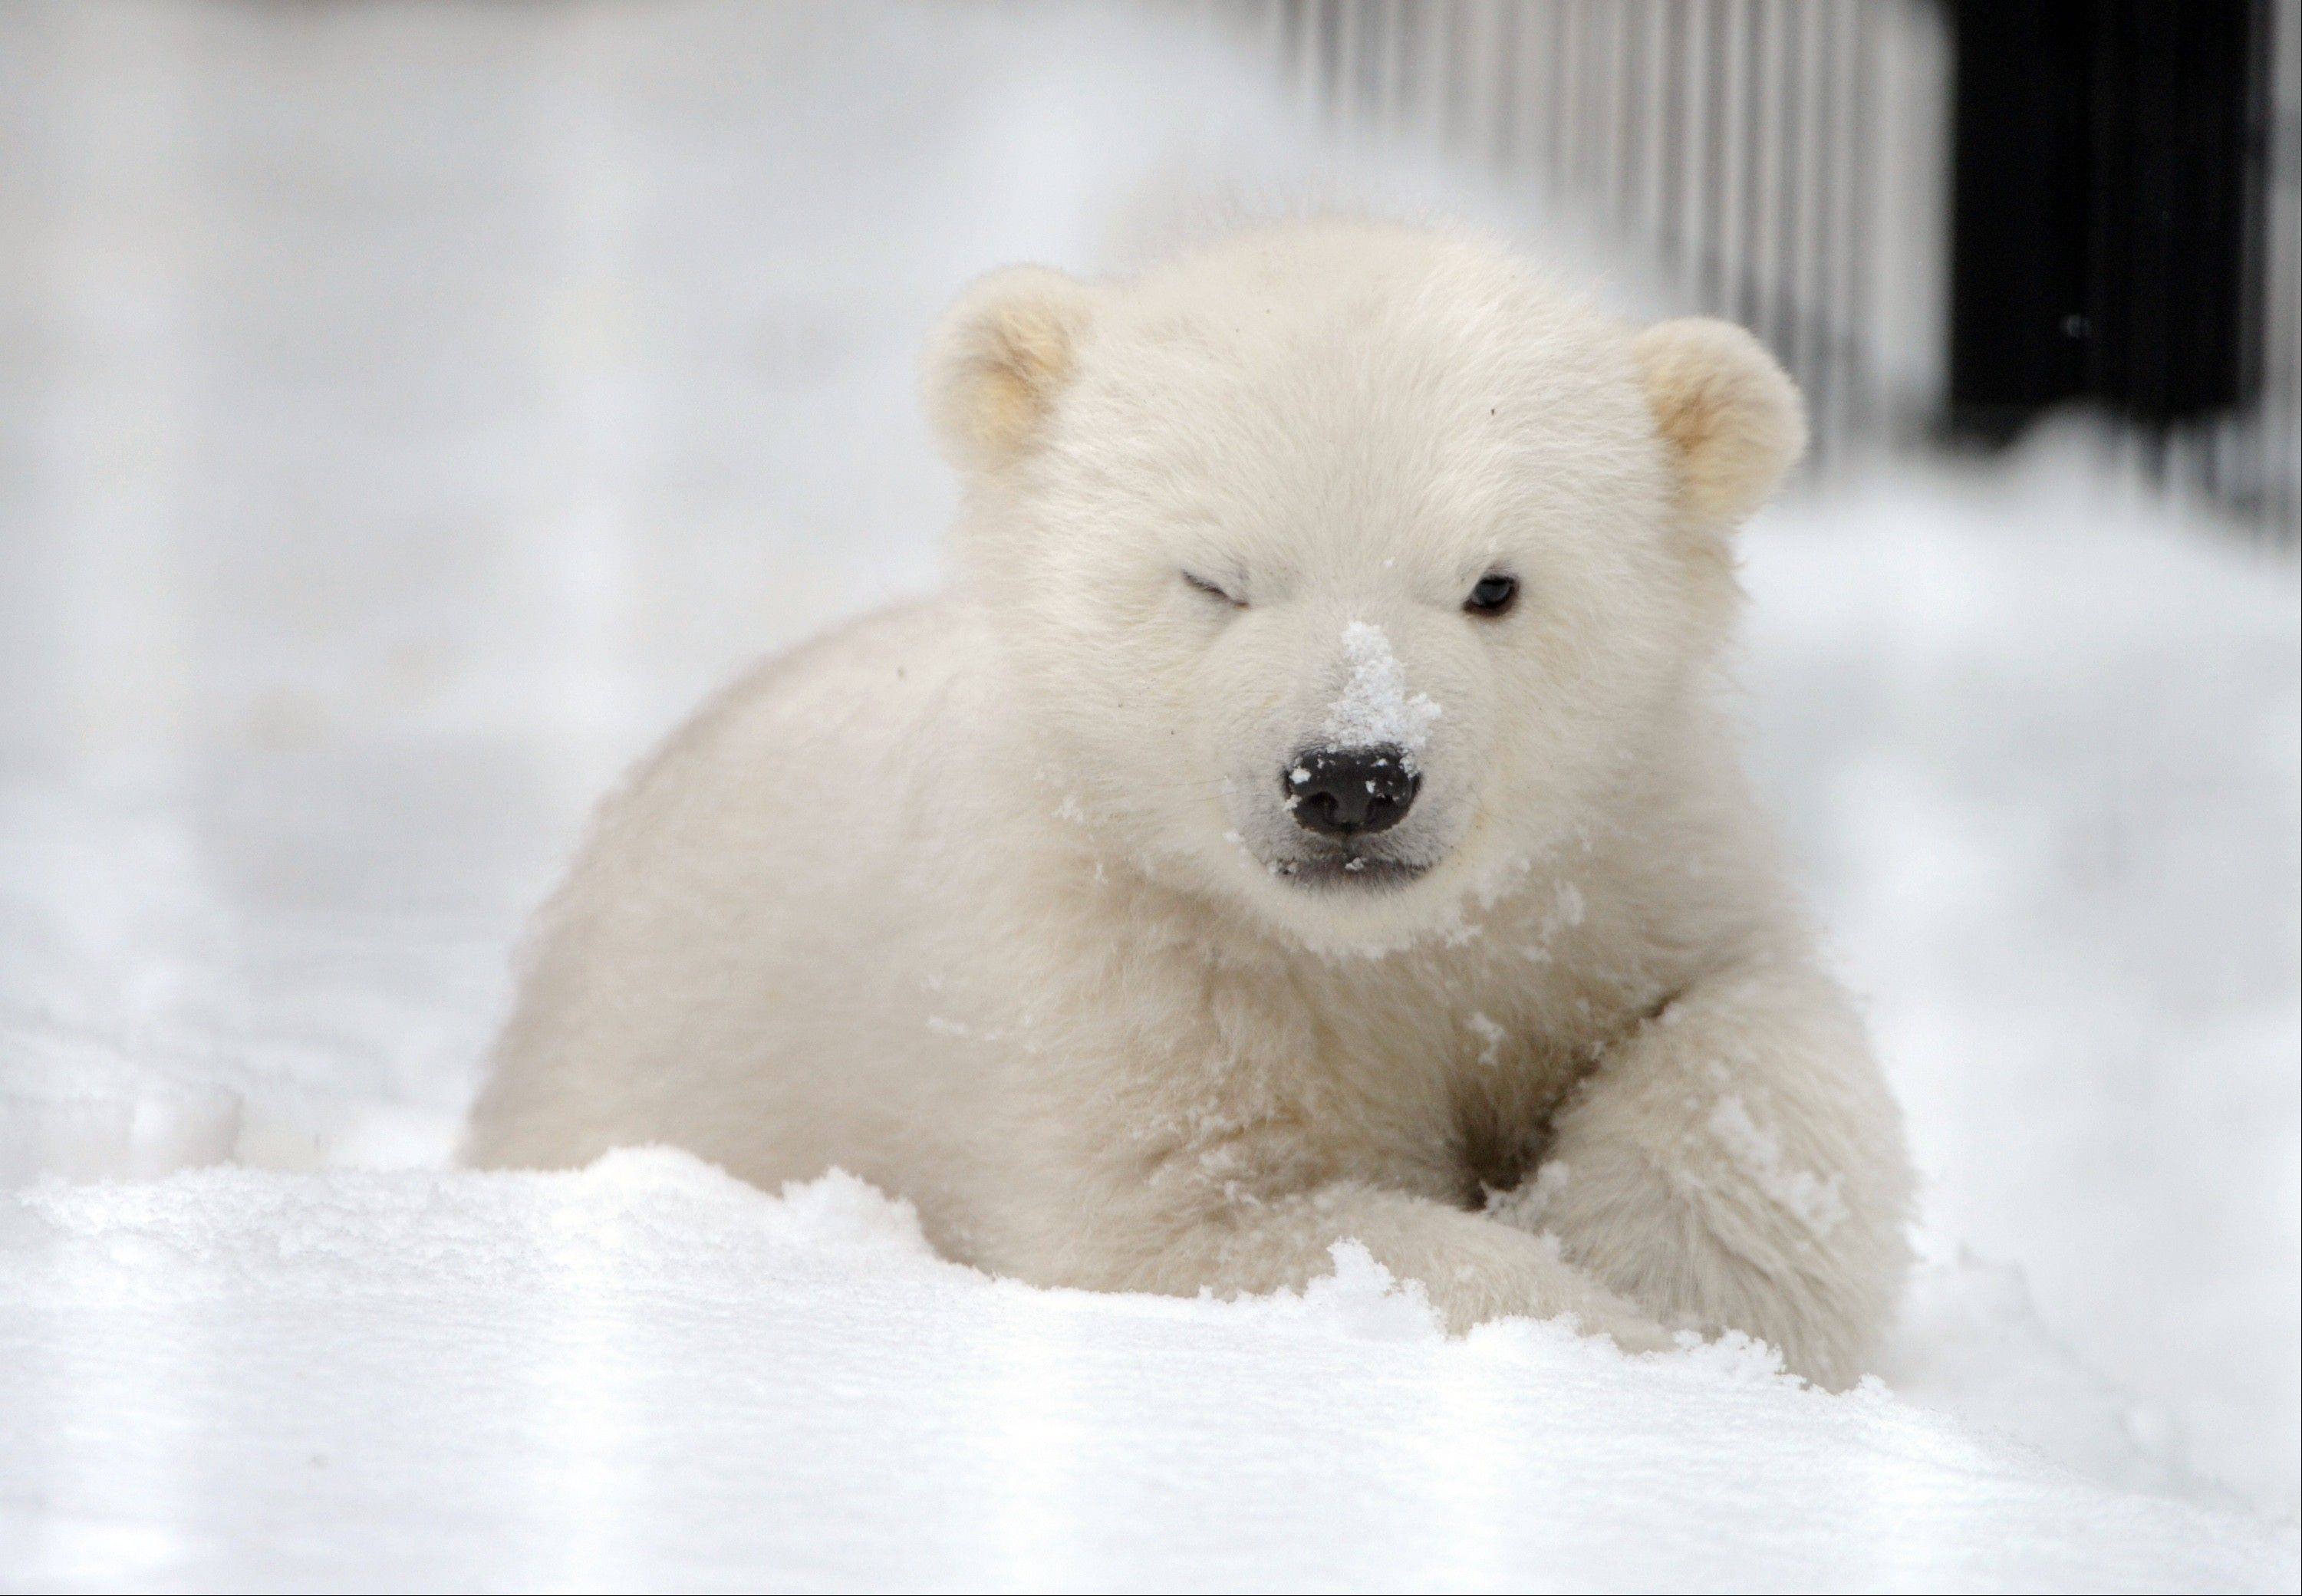 Kali, the orphaned male polar bear cub from Point Lay, Alaska, explores the enclosure outside the infirmary at the Alaska Zoo, Friday, March 22, 2013, in Anchorage, Alaska. The zoo plans to start daily public viewing of Kali on Saturday. The polar bear cub is expected to be transferred to the Buffalo Zoo sometime this spring where he will be introduced to a female cub.